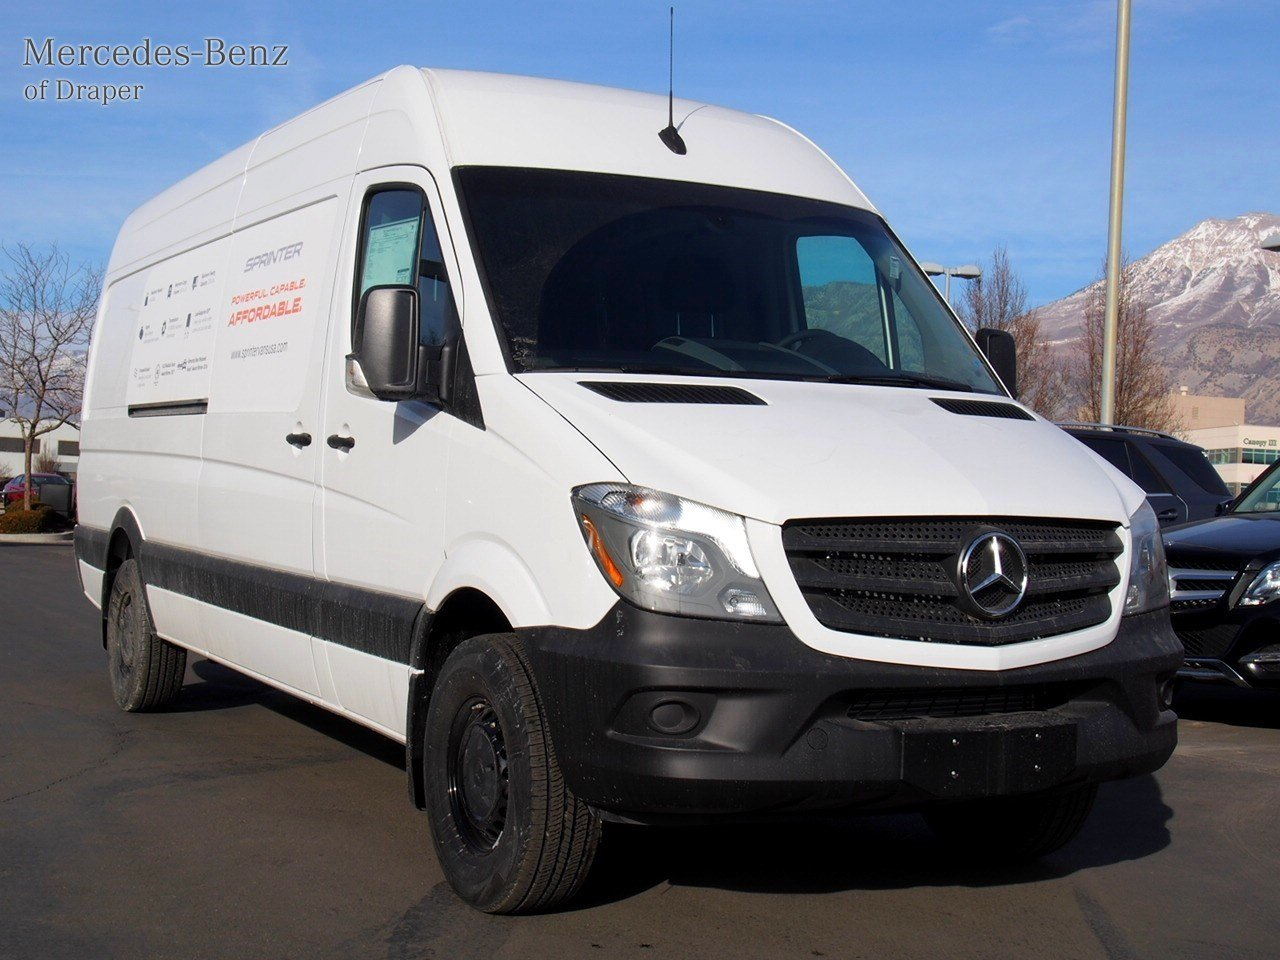 New 2017 mercedes benz sprinter cargo vans worker cargo for New mercedes benz sprinter